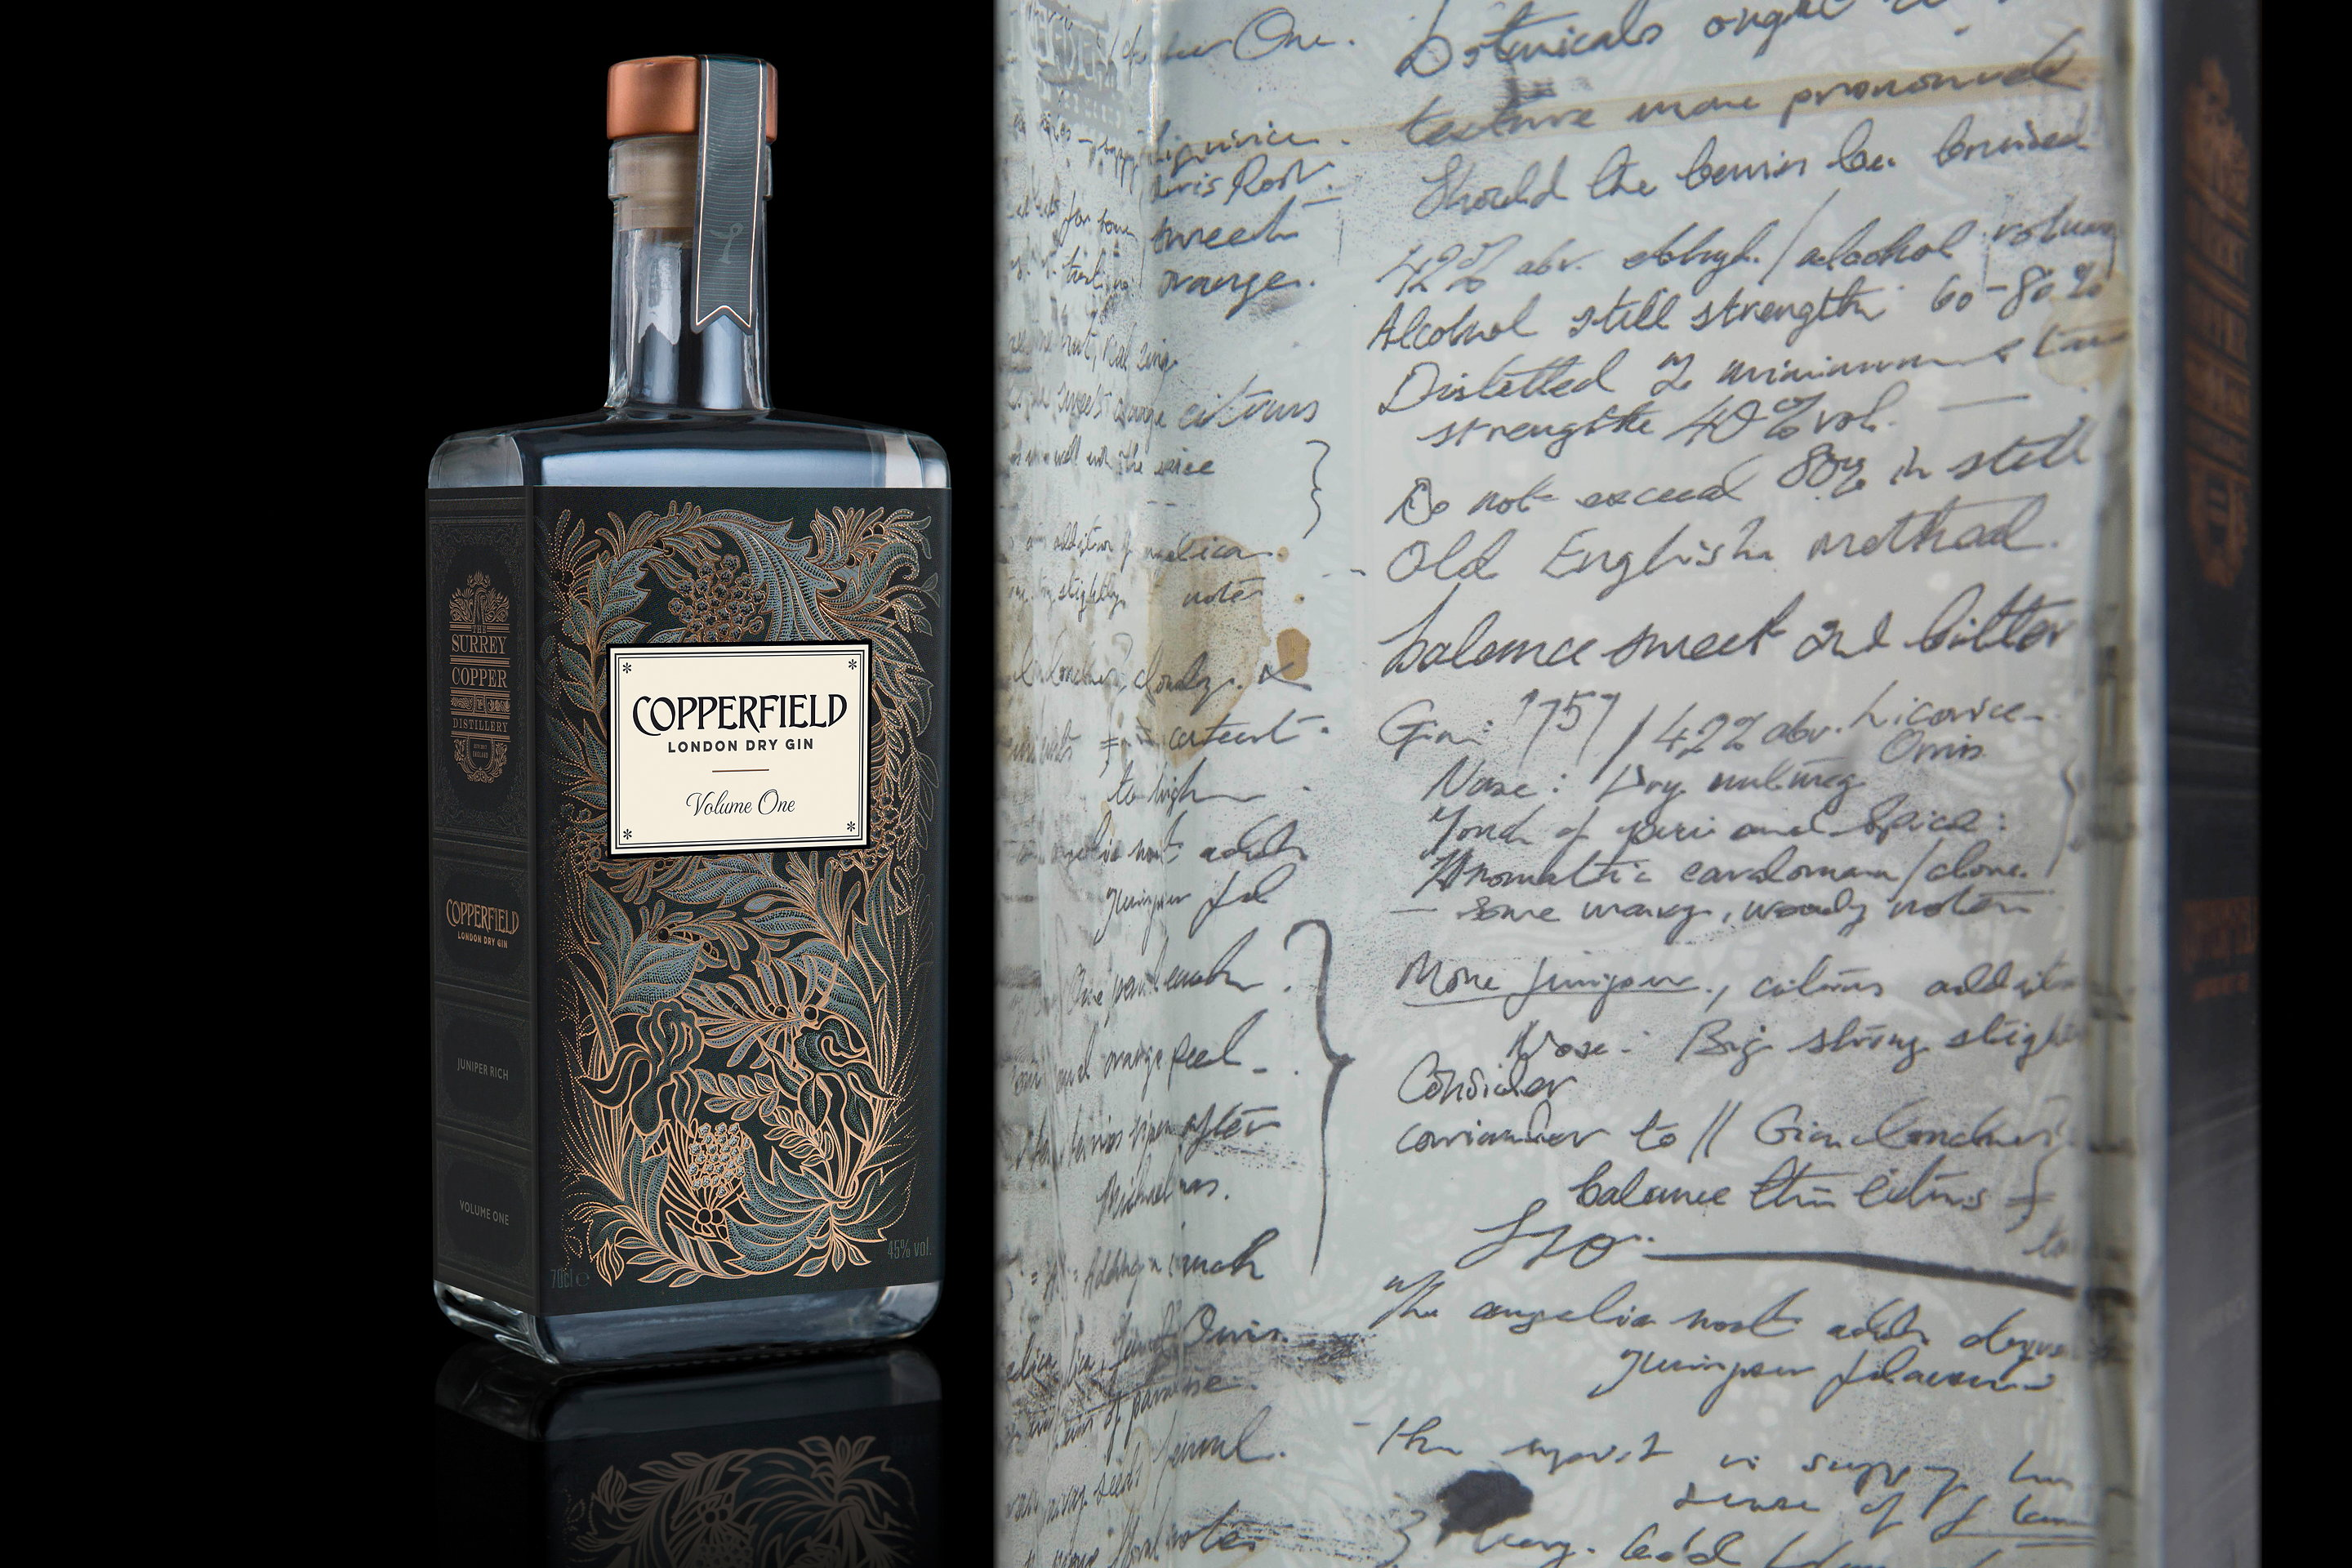 Copperfield London Dry Gin